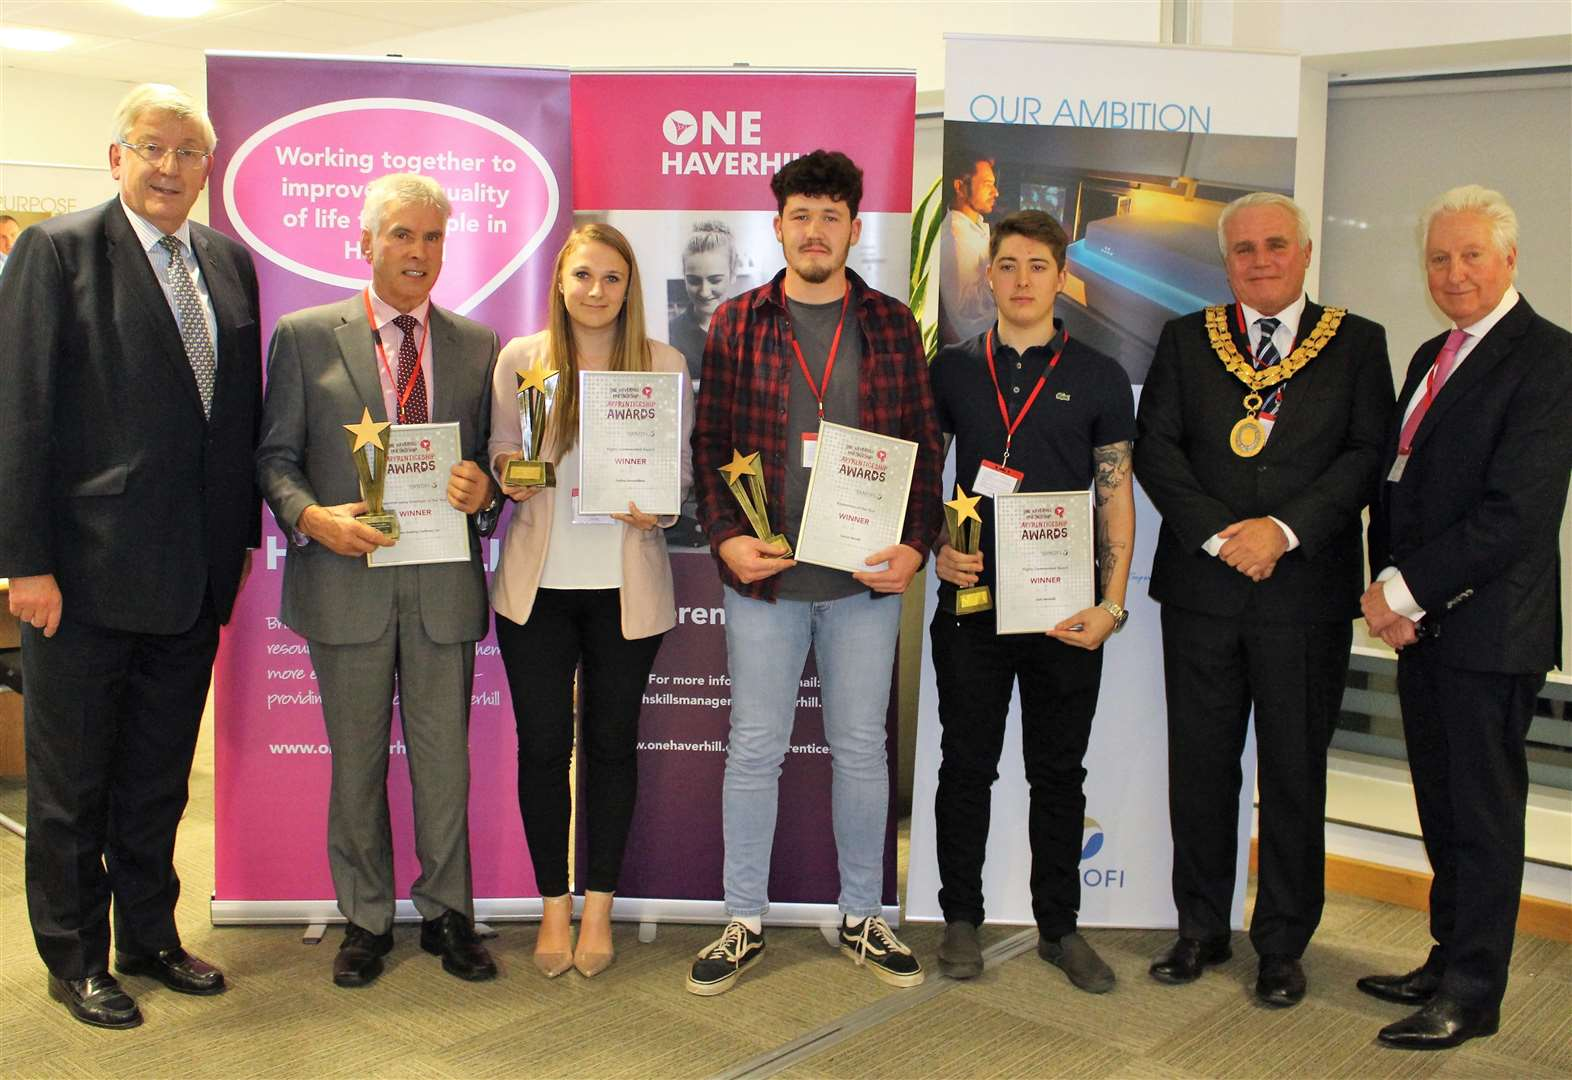 Apprenticeships are celebrated